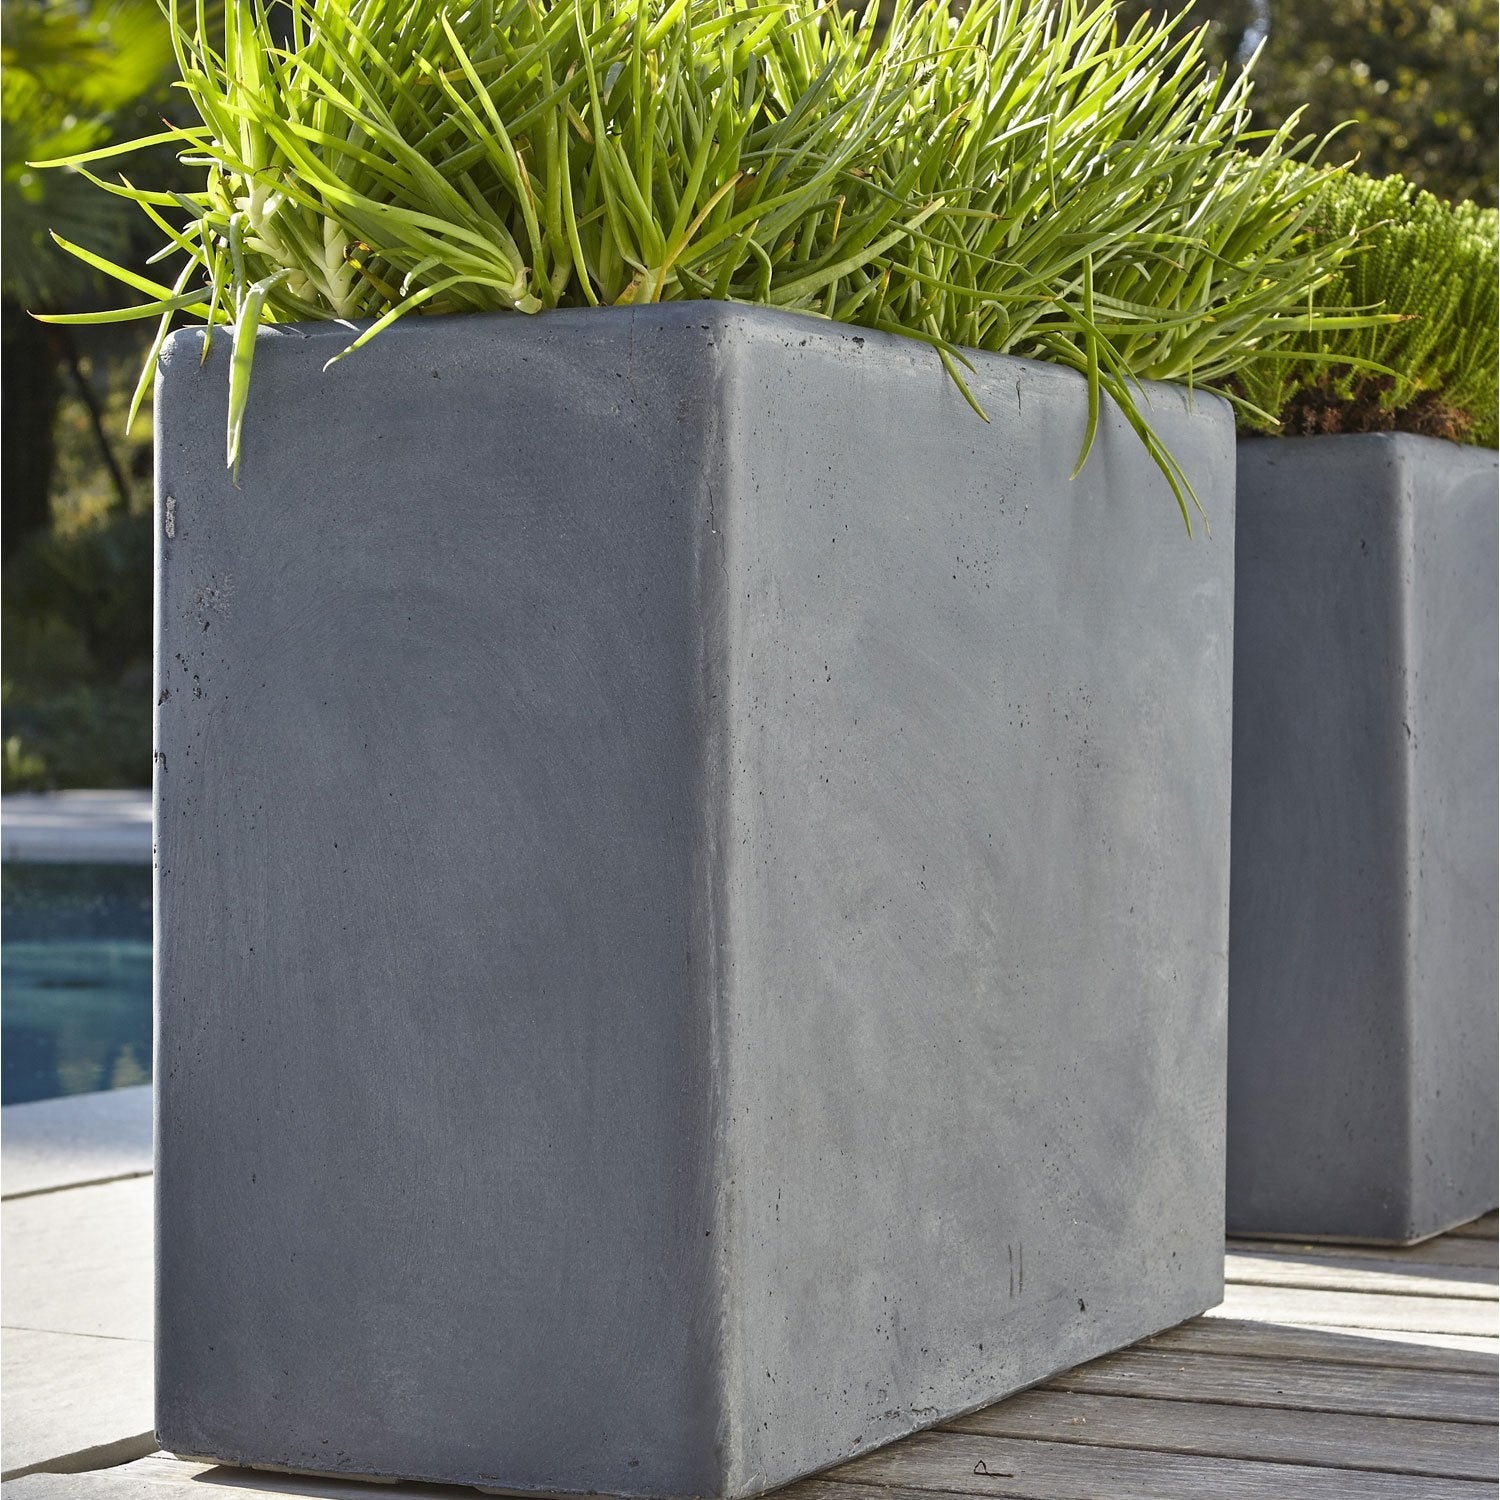 Jardini re fibre x x cm gris leroy merlin for Table haute 50x50